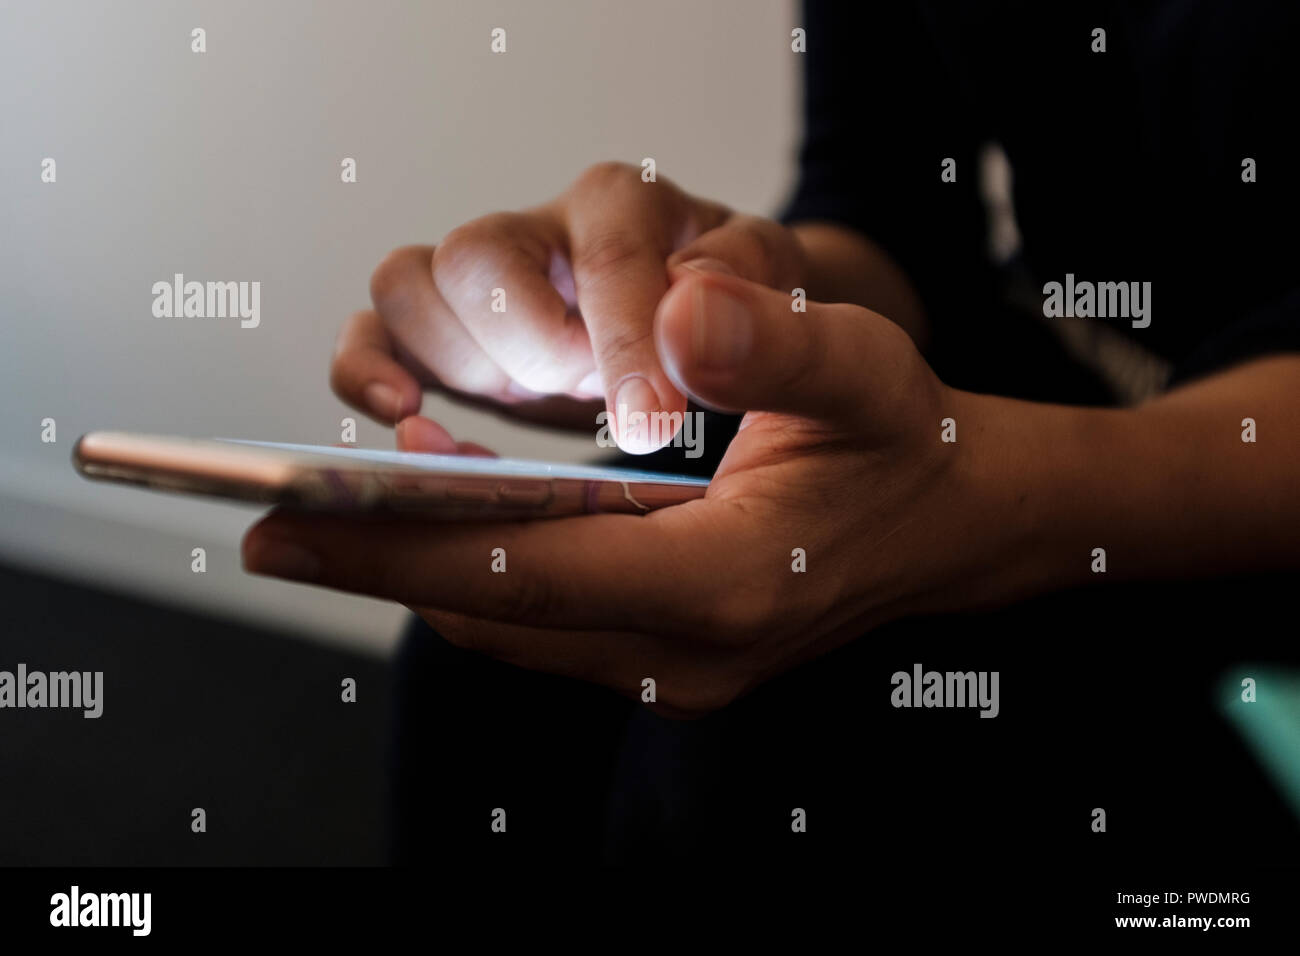 Selective focus,close-up of  woman using a touch screen smart phone - Stock Image